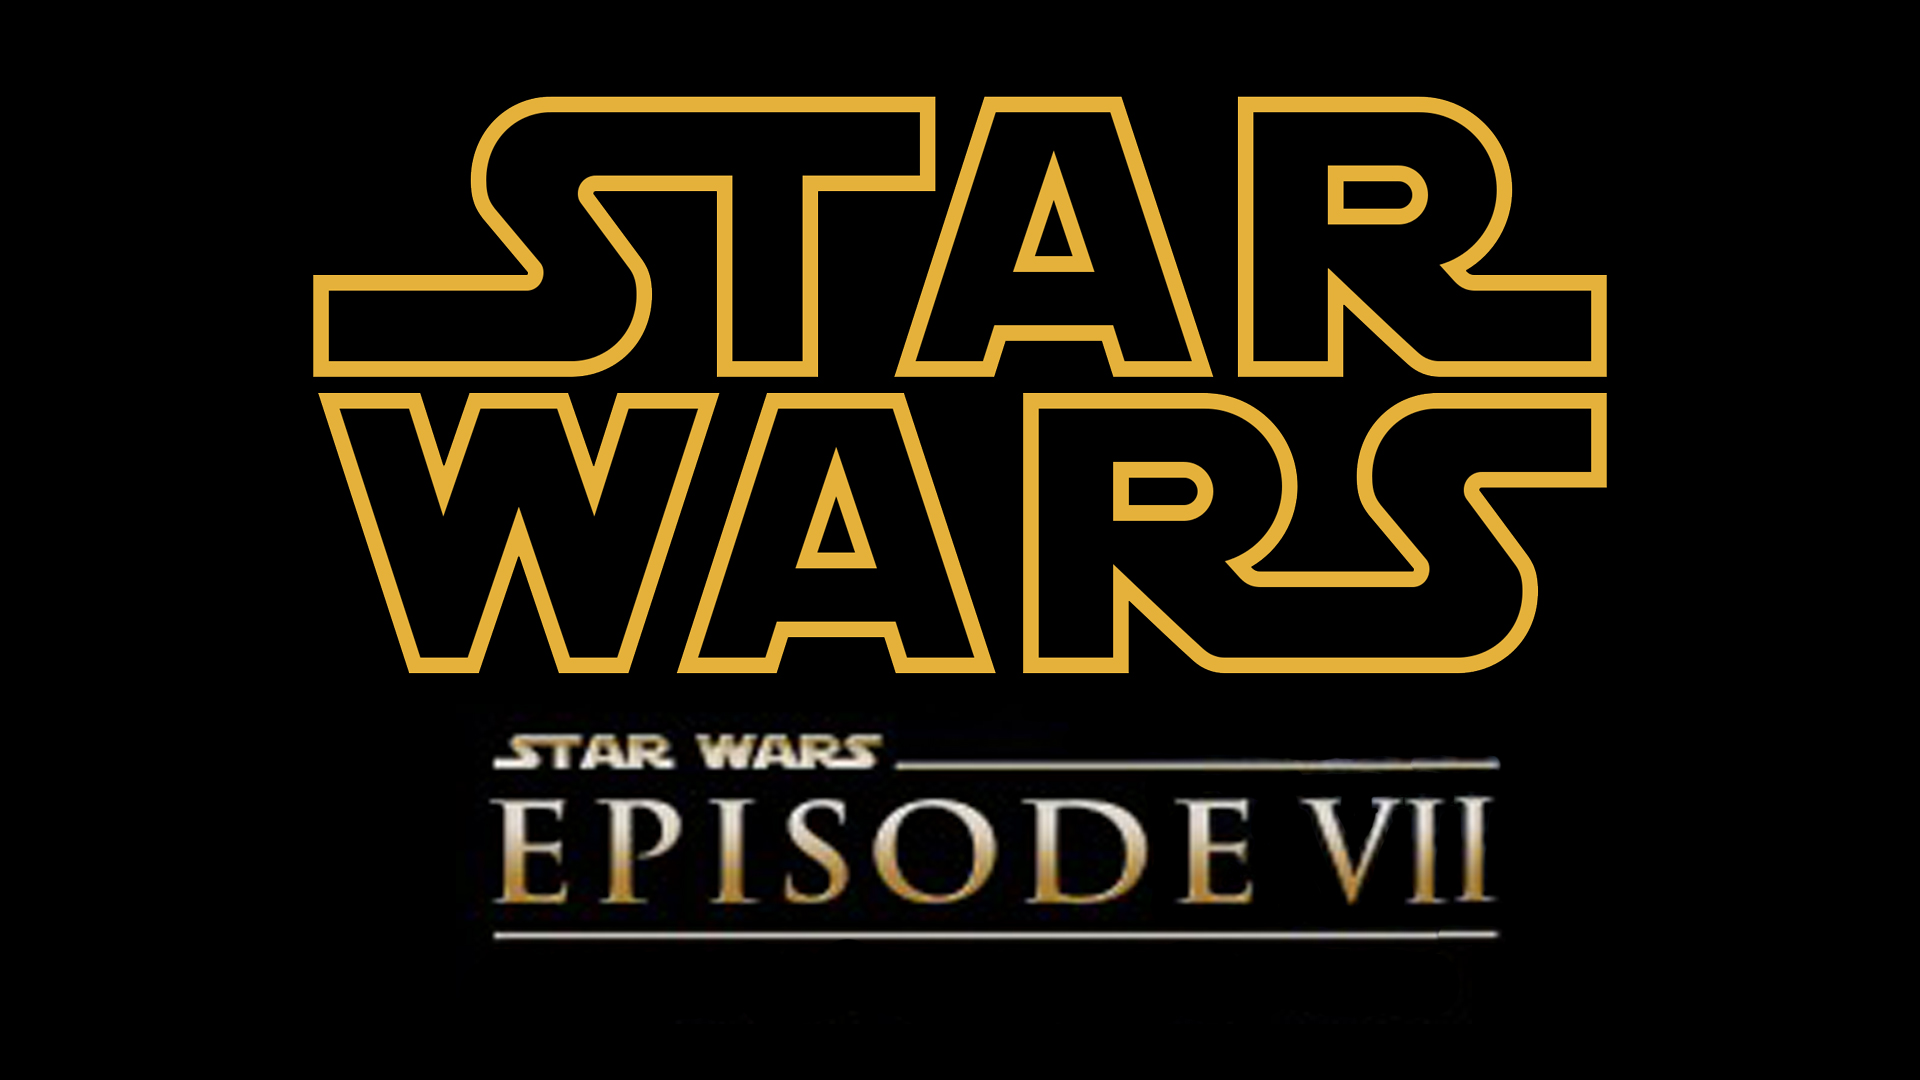 Star Wars: Episode VII Release Date Officially Announced